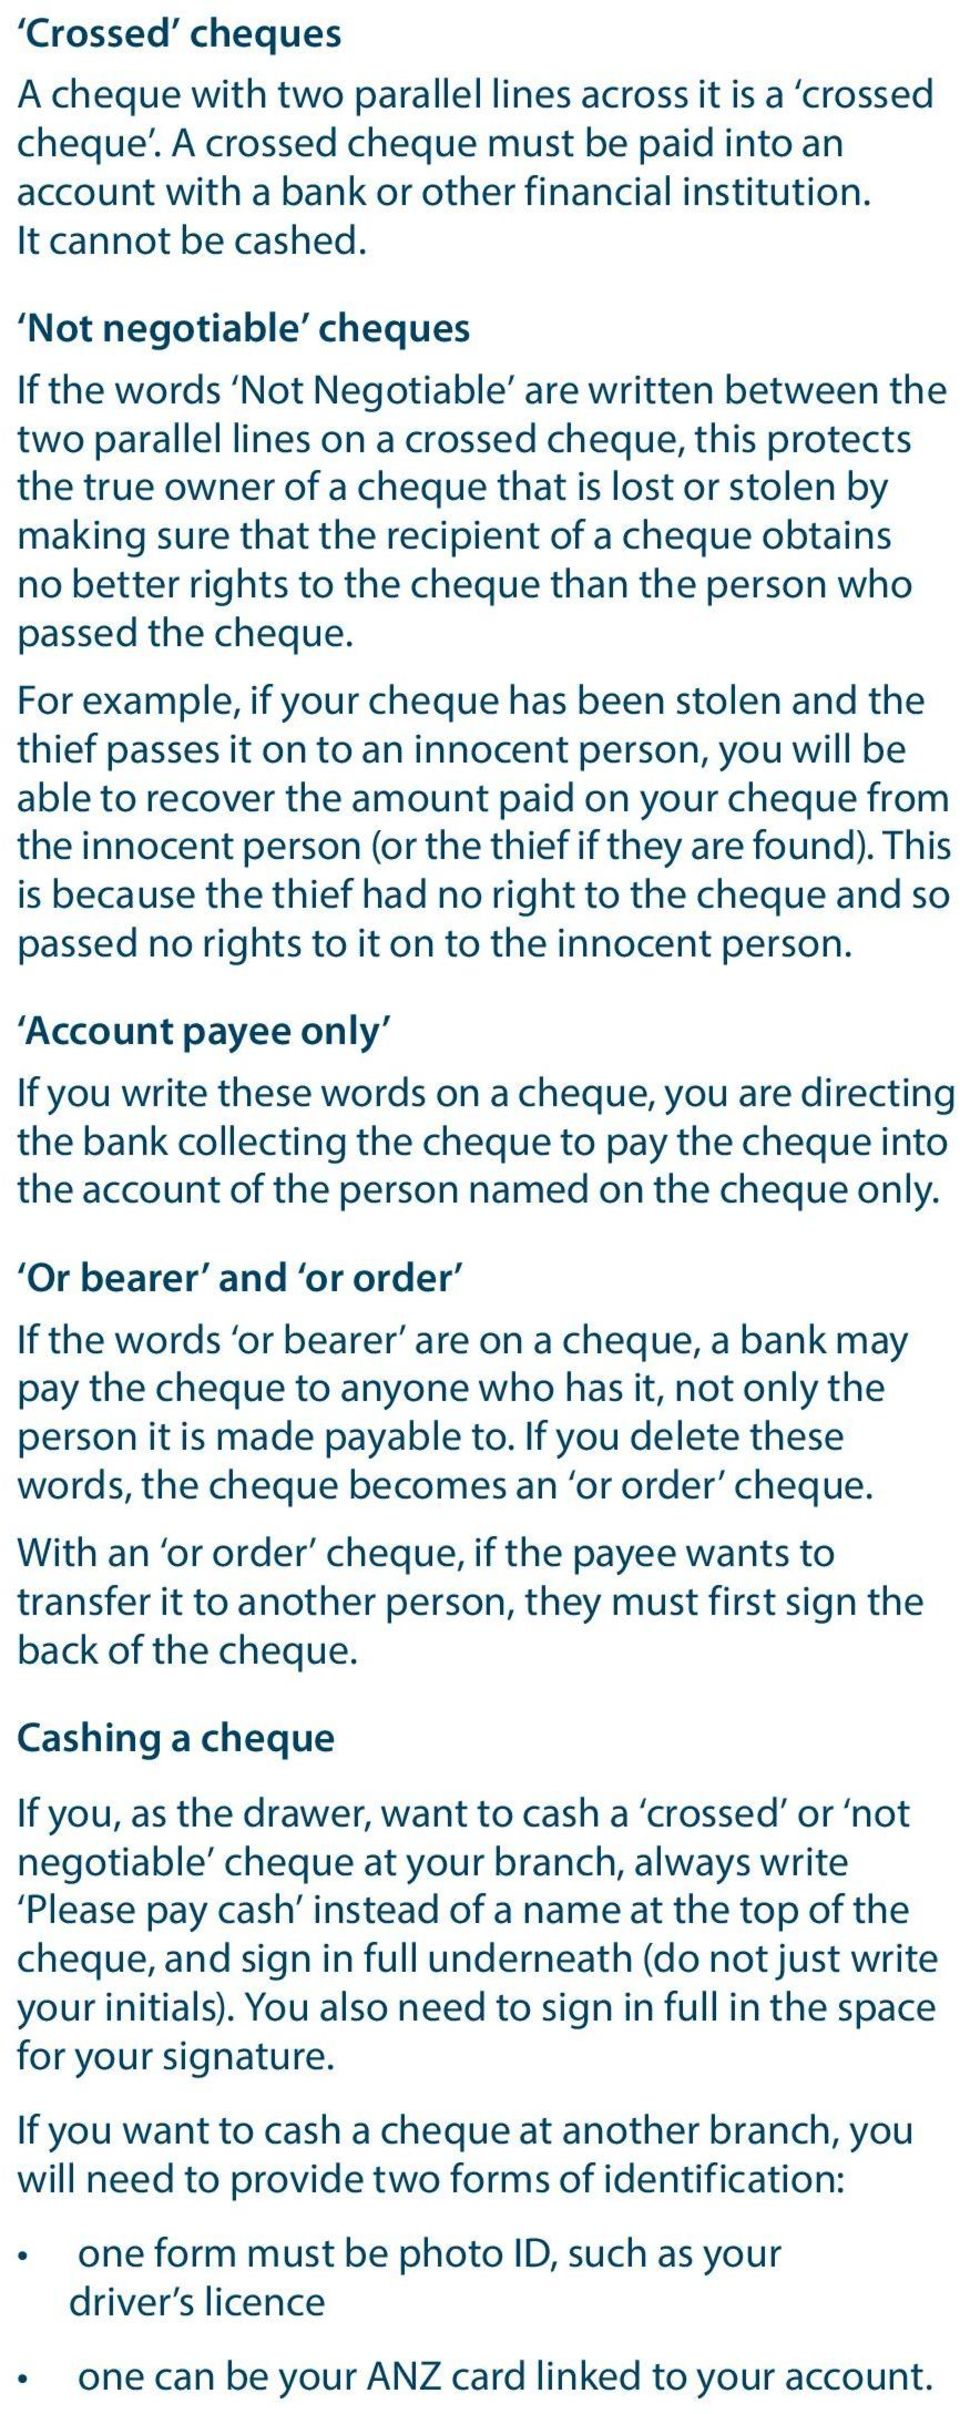 the recipient of a cheque obtains no better rights to the cheque than the person who passed the cheque.